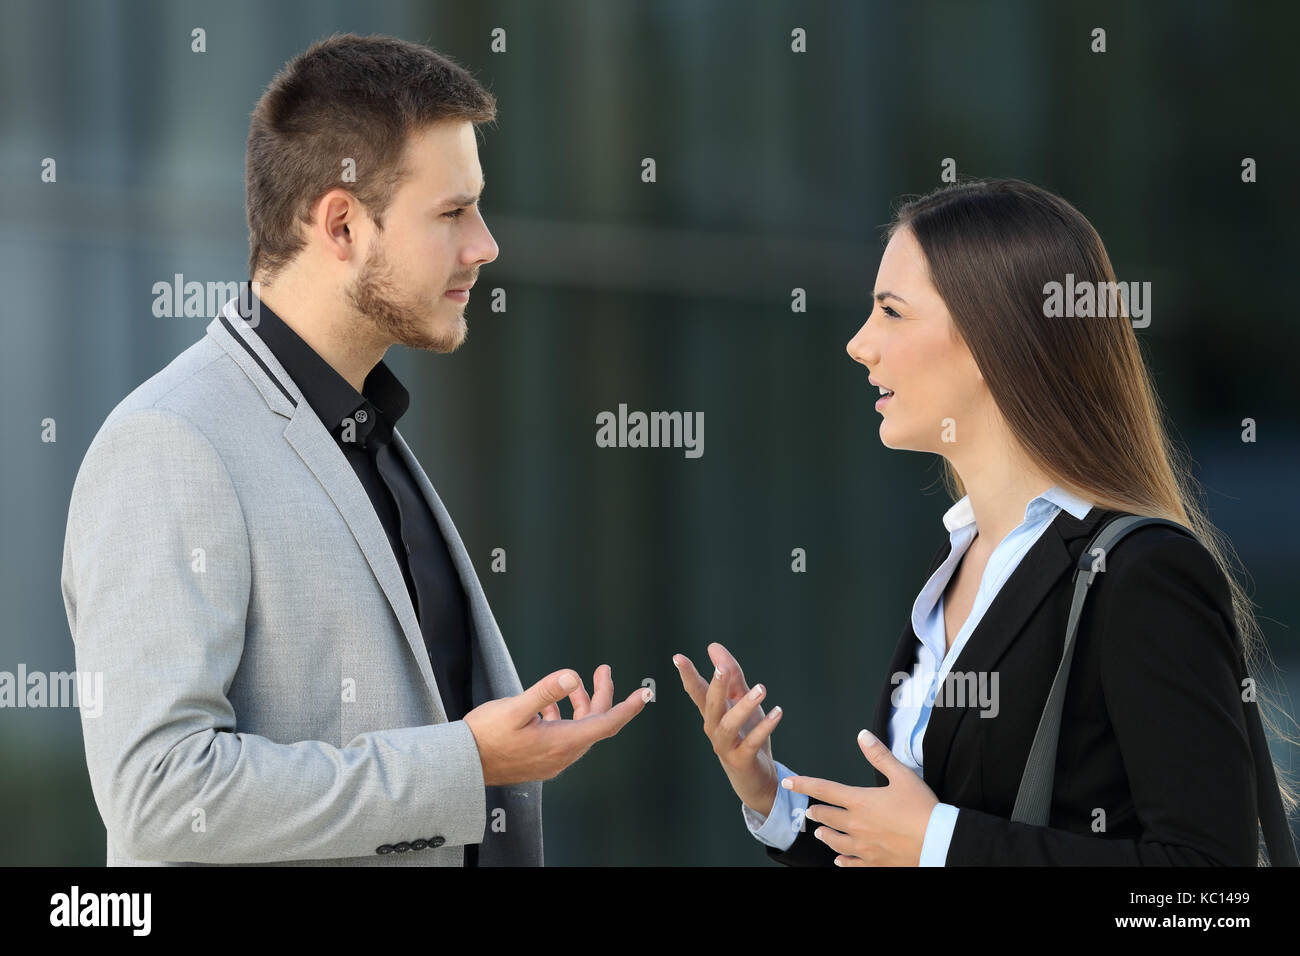 Side view portrait of two executives talking seriously standing outdoors on the street - Stock Image